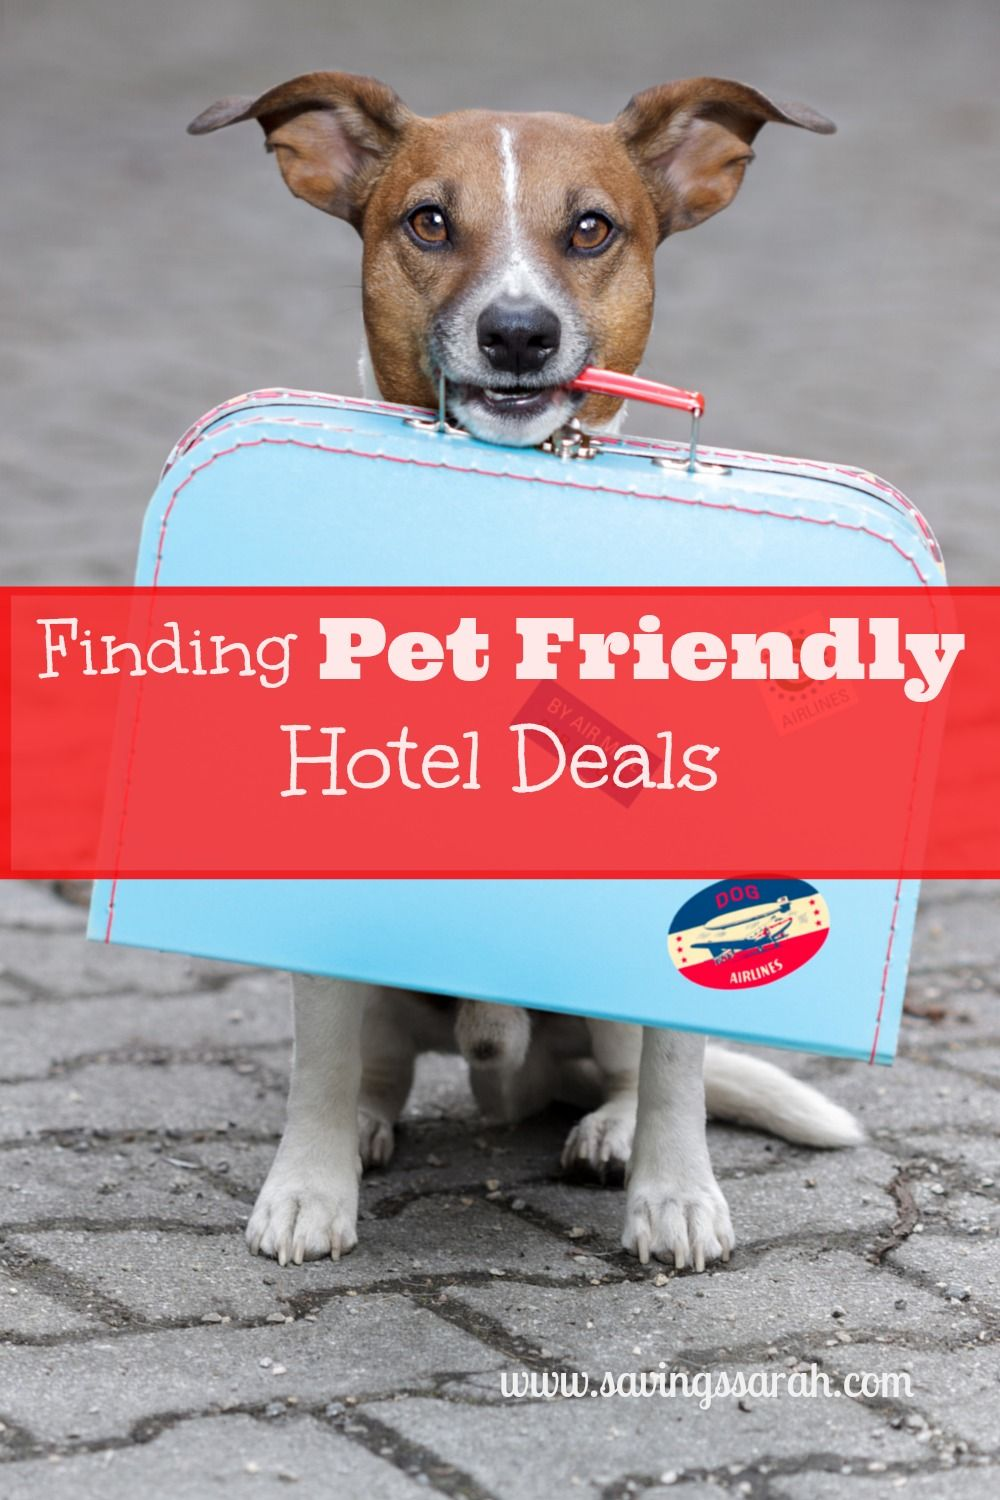 Between Holiday And Vacation Travel You May Want To Take Your Pets Along For The Trip Here Are Three Tips Finding Pet Friendly Hotel Deals When